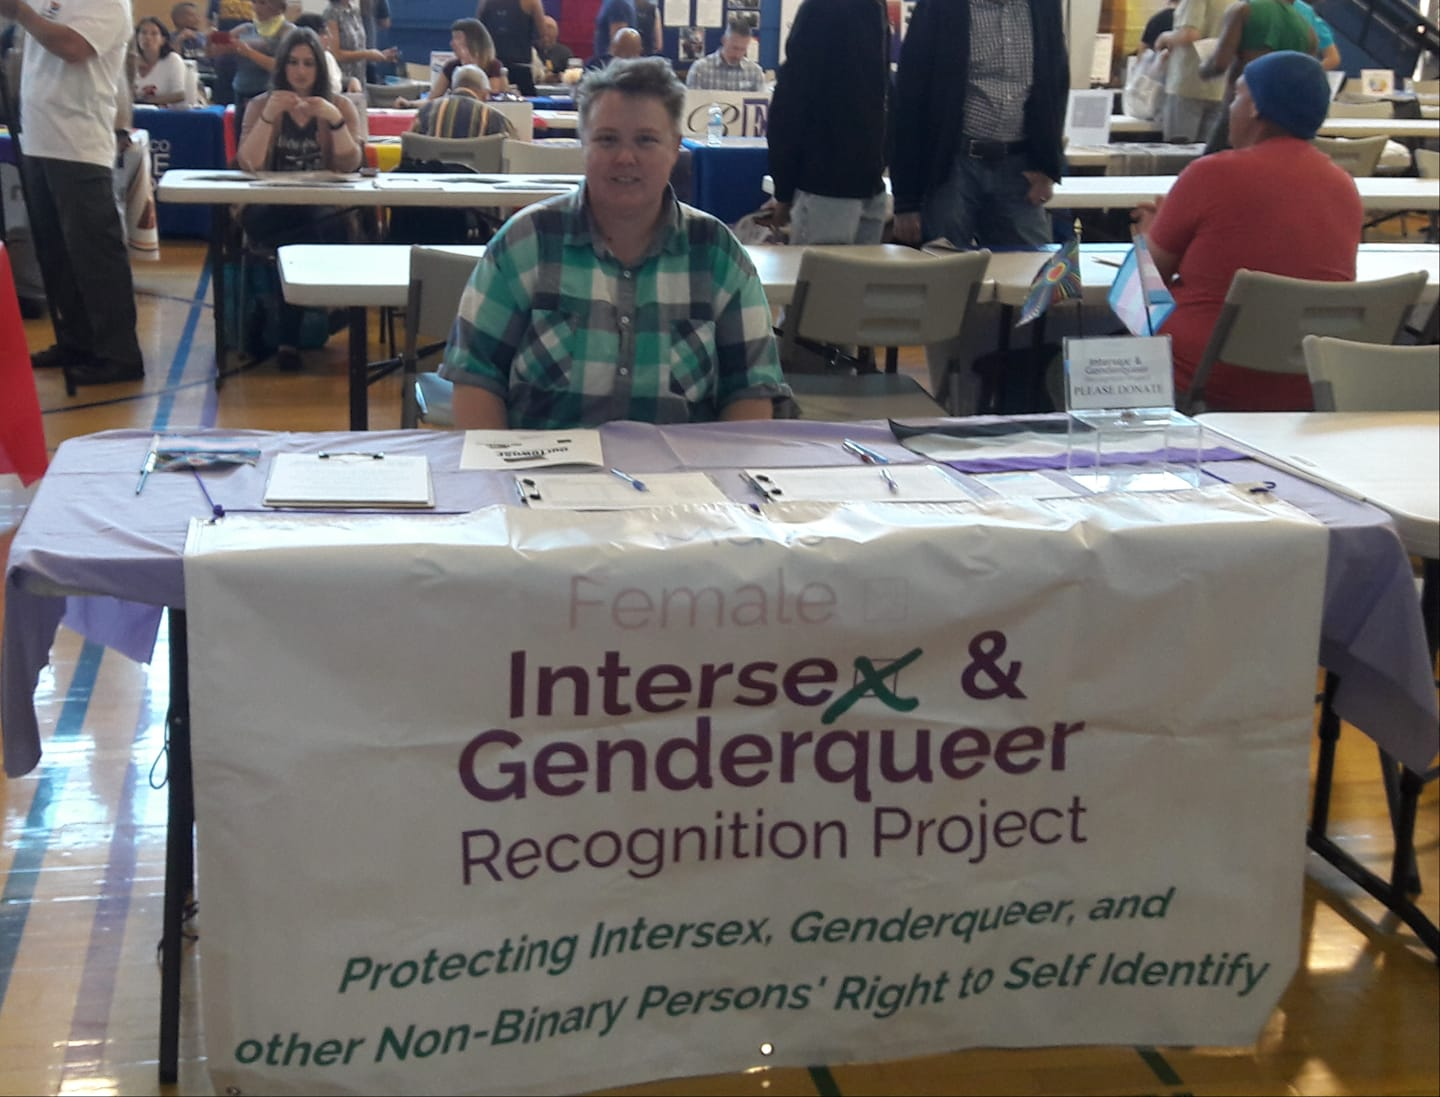 Intersex & Genderqueer Recognition Project 2.jpg